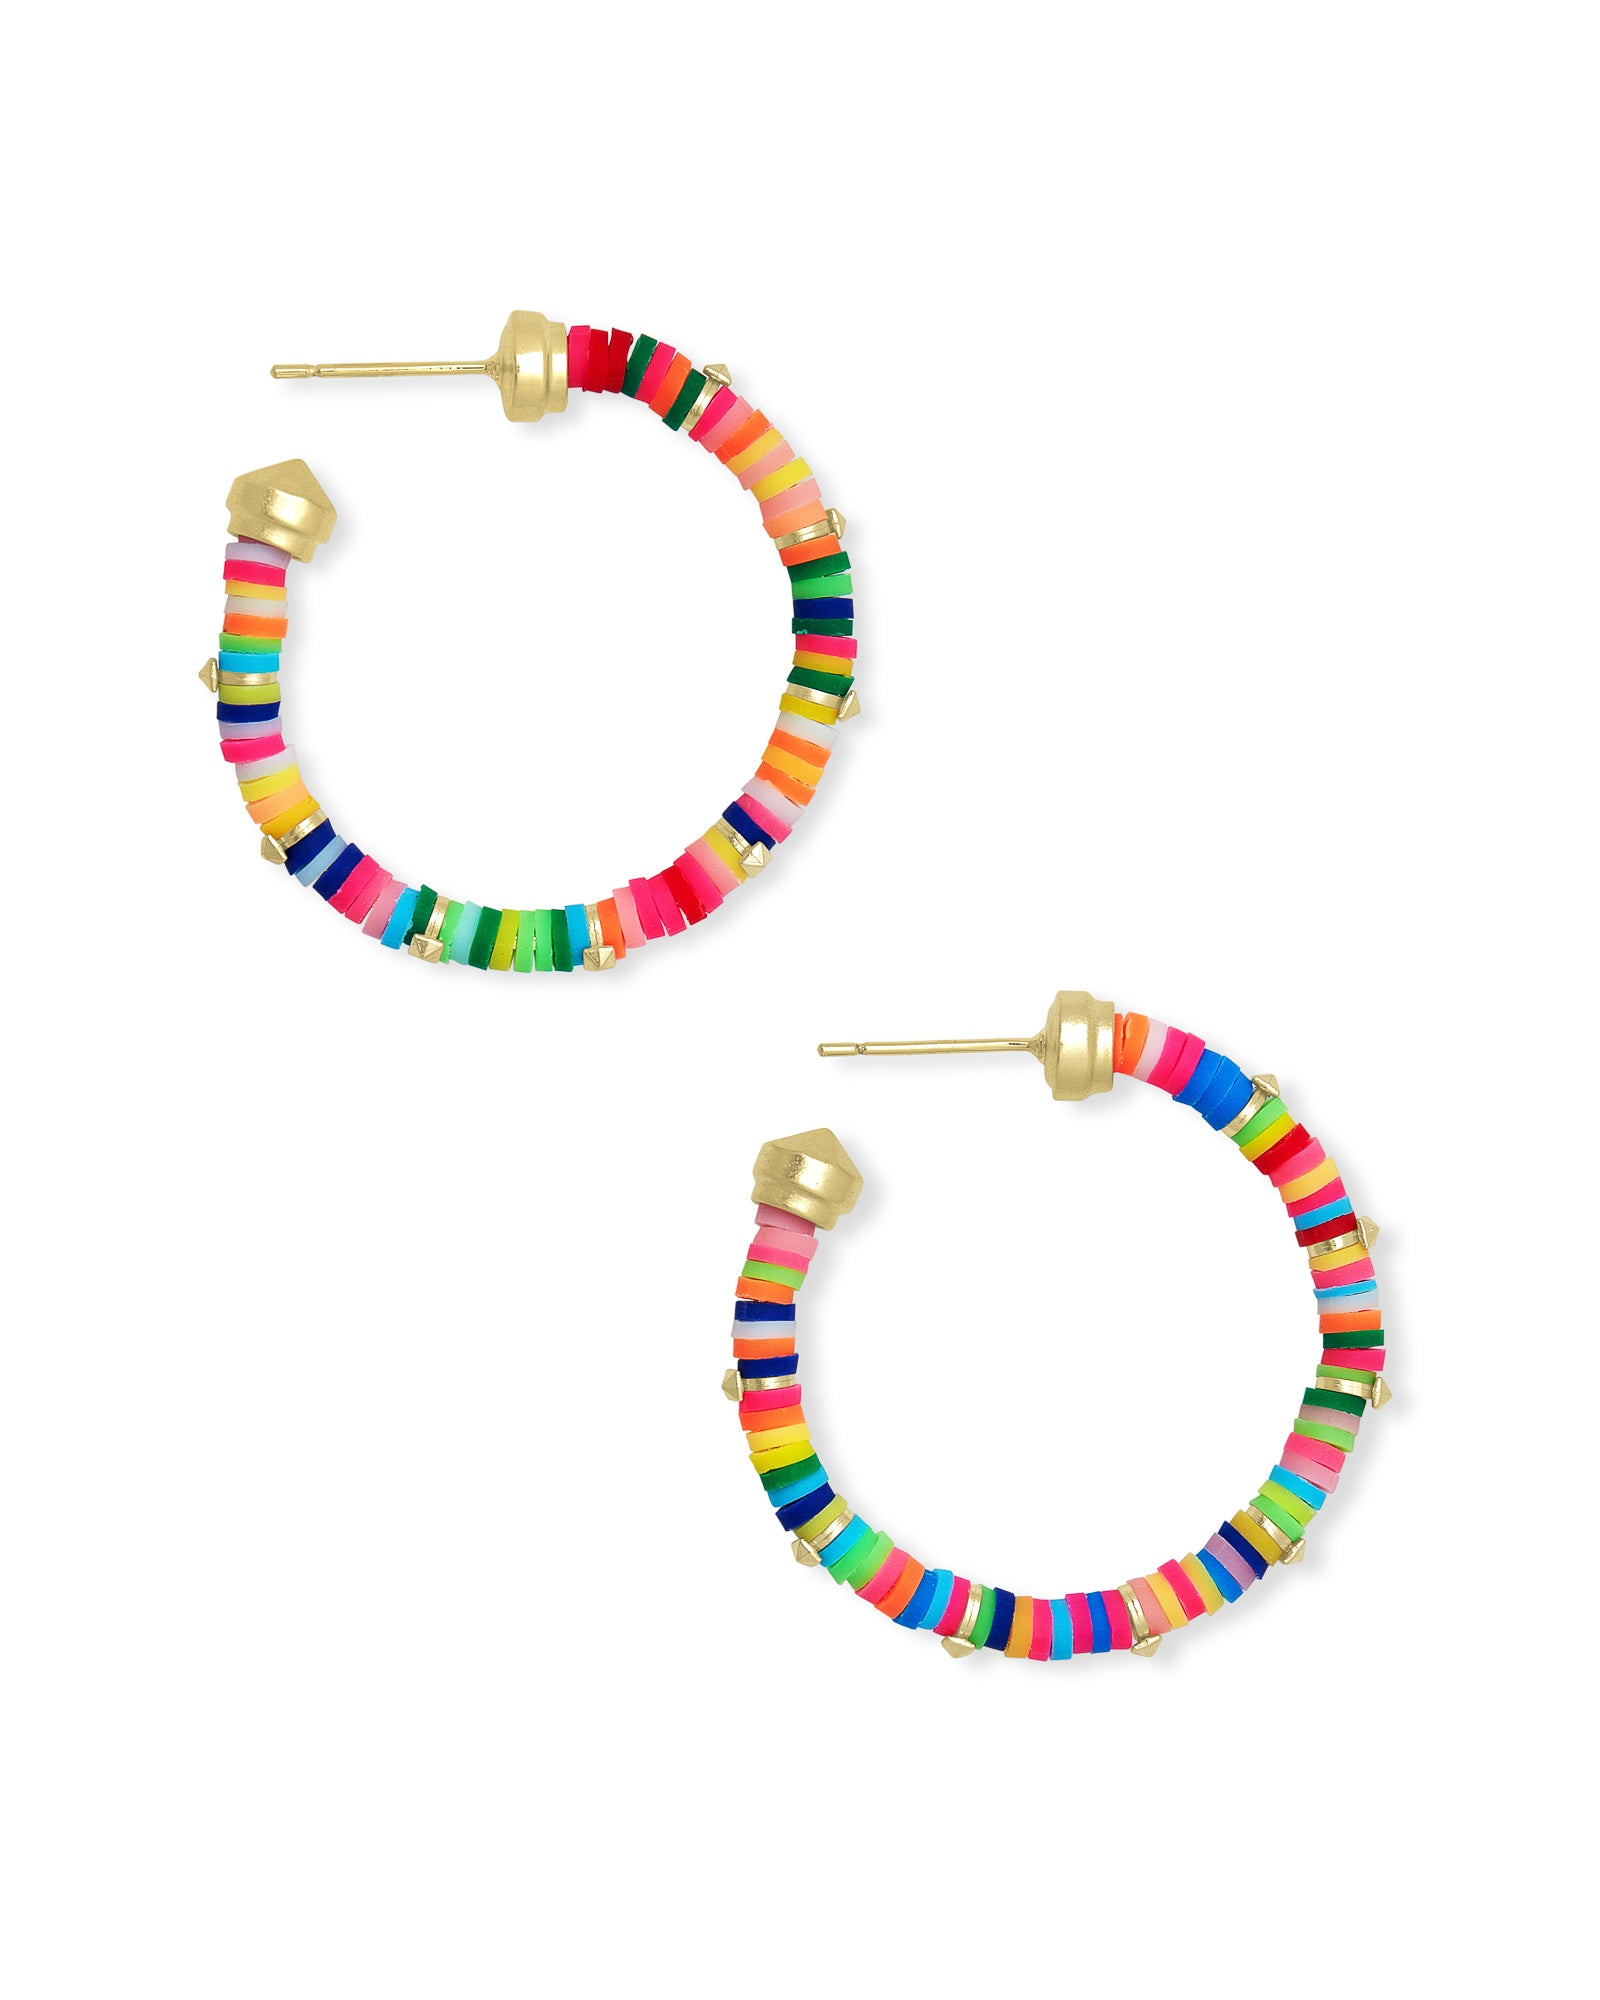 Kendra Scott Reece Gold Small Hoop Earrings In Neon Mix